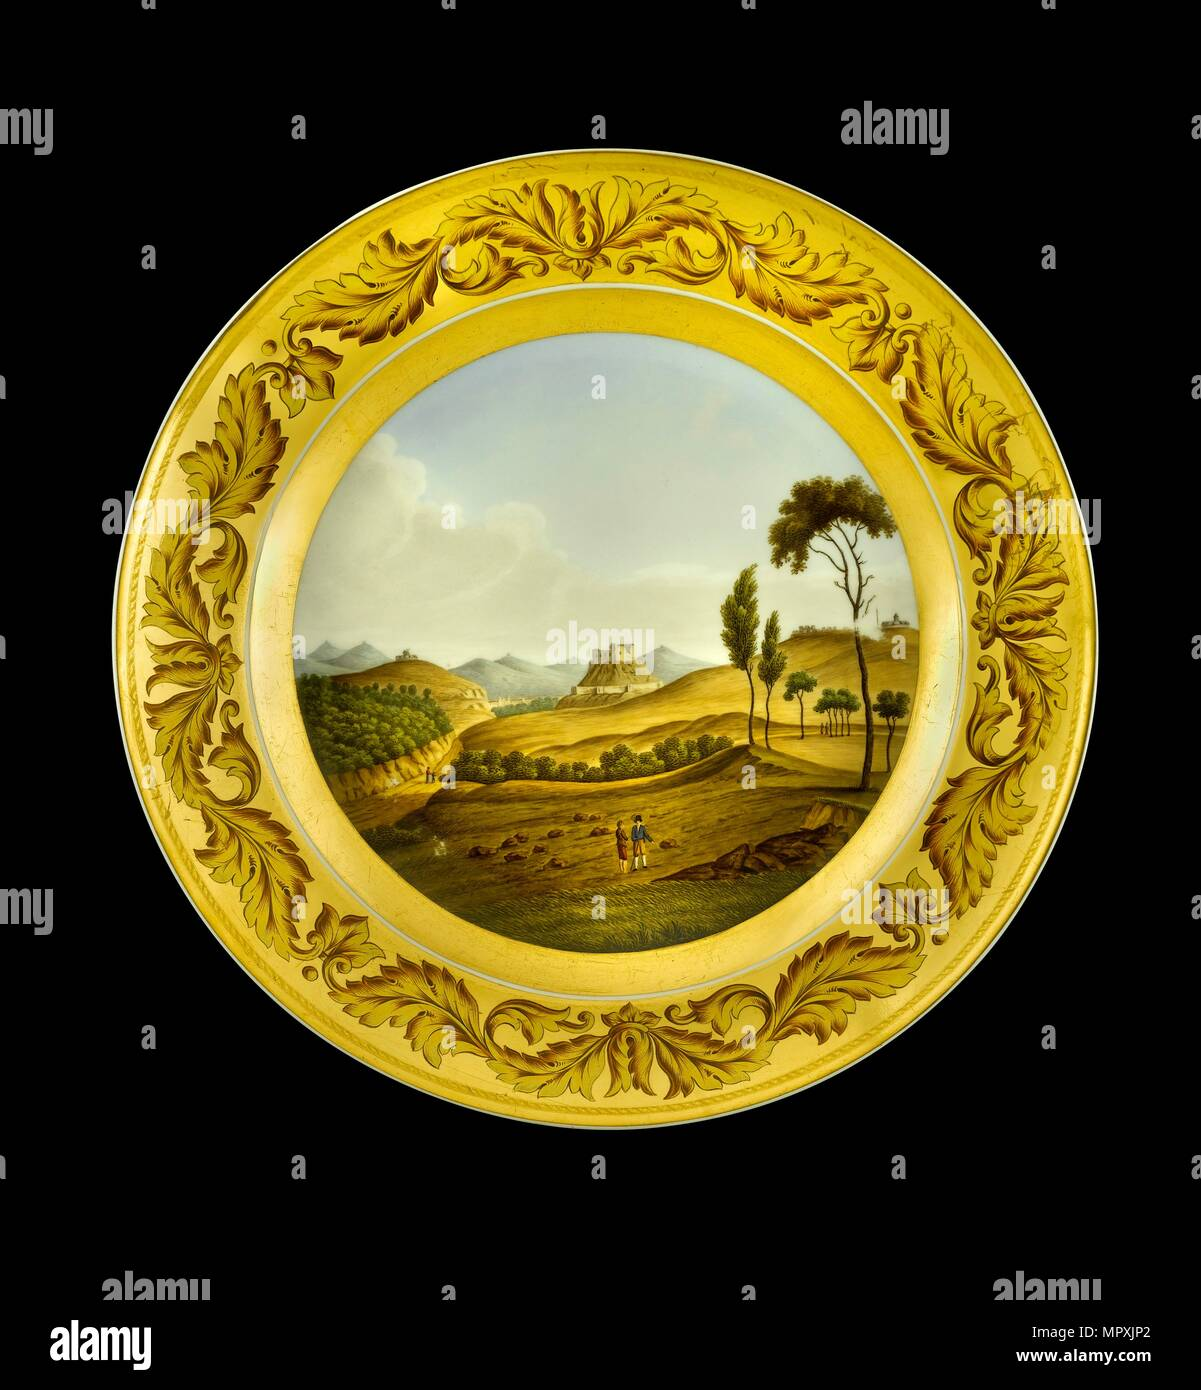 Dessert plate depicting the Lines of Torres Vedras, Portugal, 1810s. Artist: AJ Photographics. - Stock Image